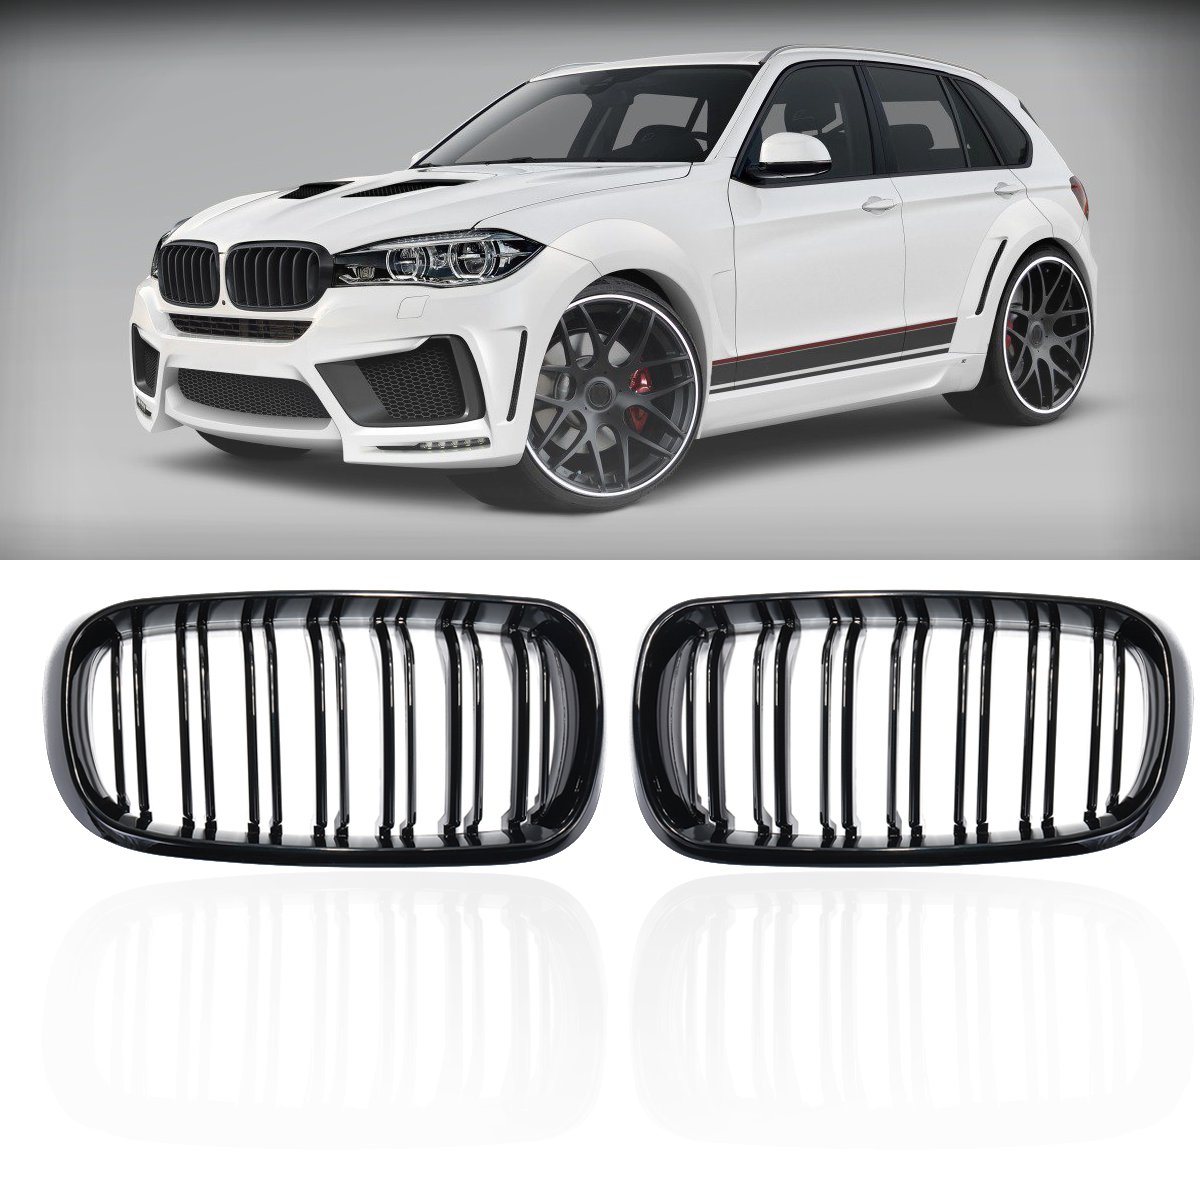 Pair New ABS Replacement Gloss Black Double Slat Front Grill Grille For BMW F15 F16 X5 X6 2014 2015 2016 2018 x5 f15 x6 f16 abs gloss black grill for bmw x5 x6 f15 f16 front bumper grille kidney mesh